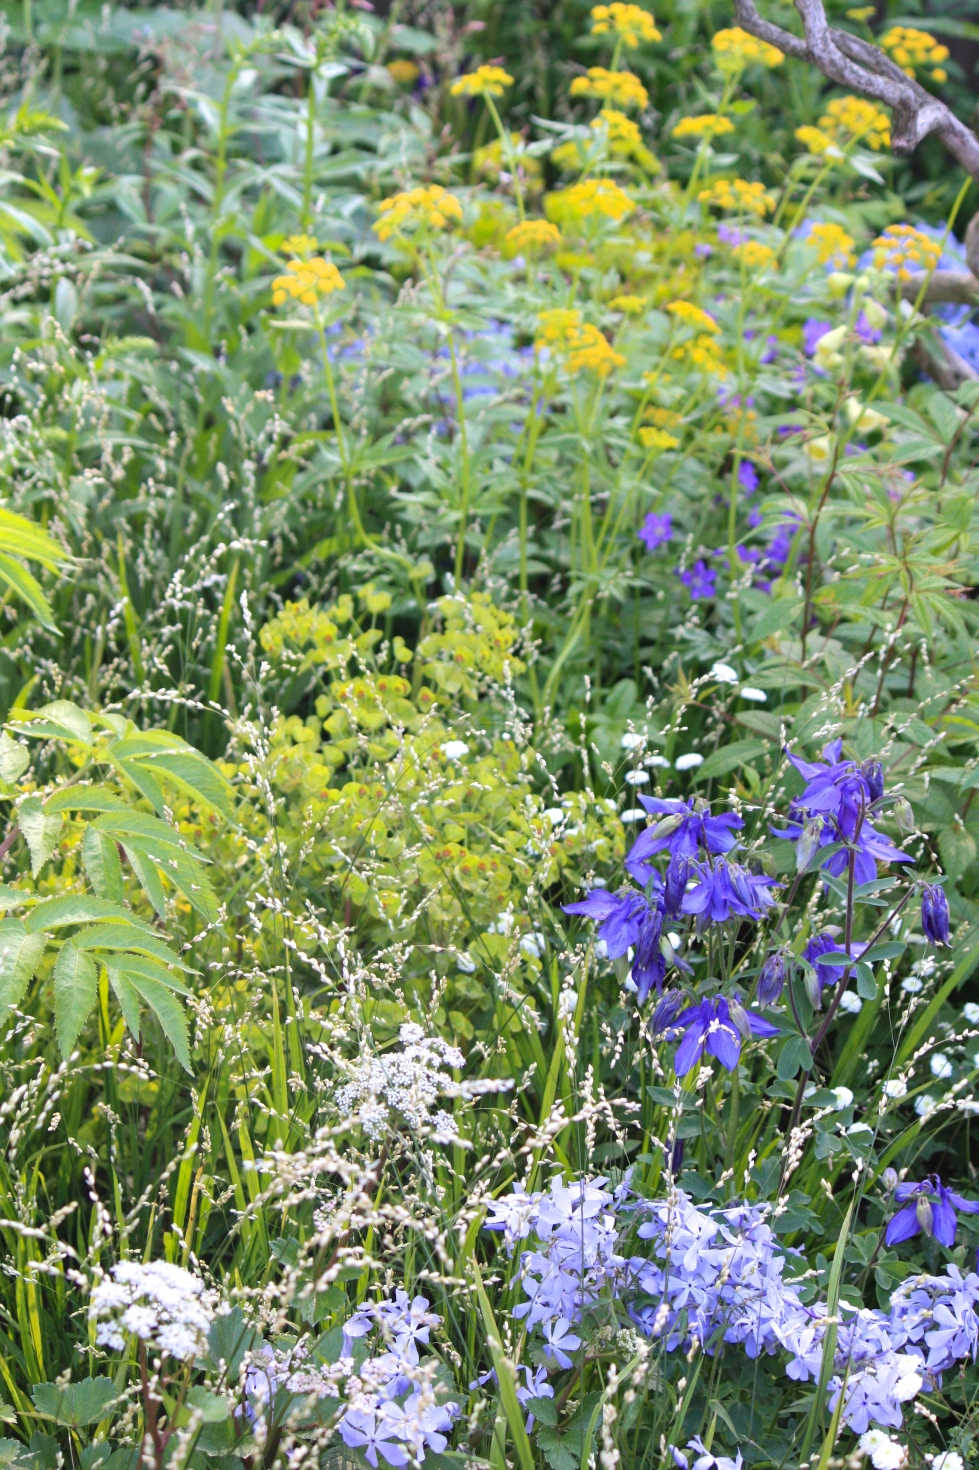 Light, lithe perennials carpet the ground beneath the multi-stemmed oak trees